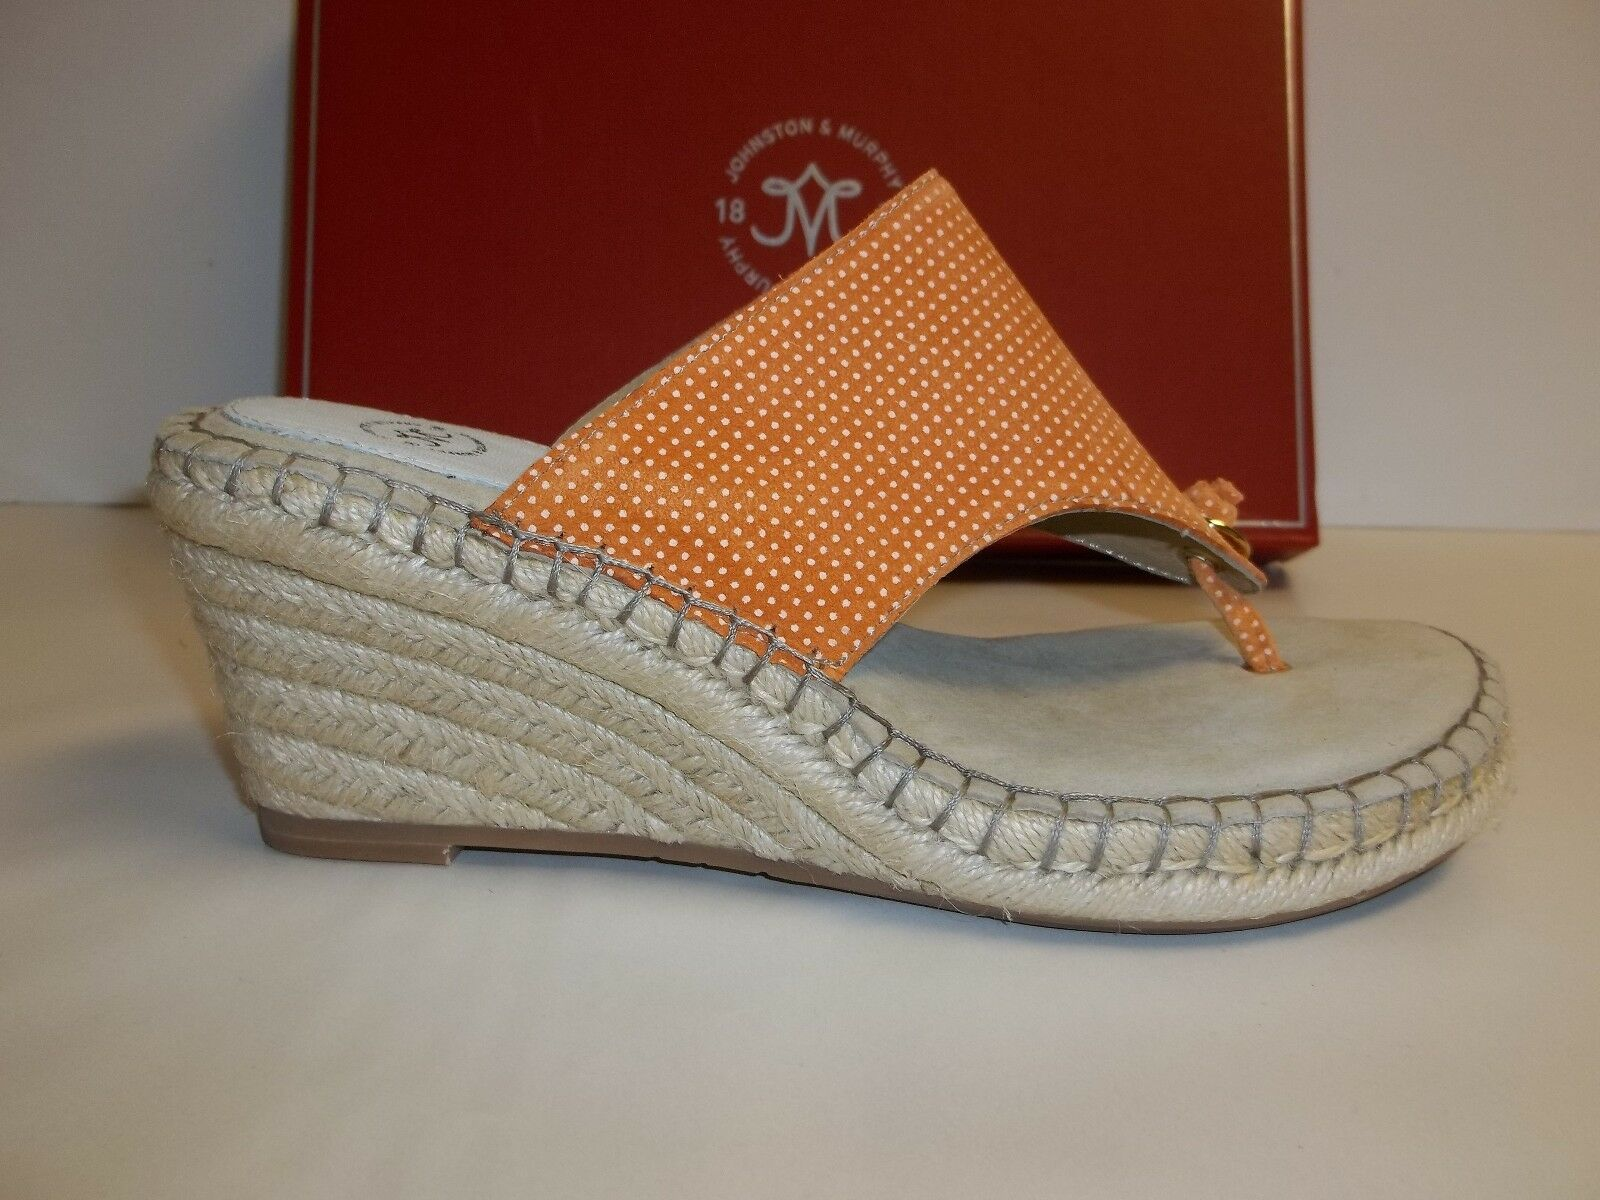 Johnston & Murphy Size 8 M AINSLEY orange Suede Thong Sandals New Womens shoes